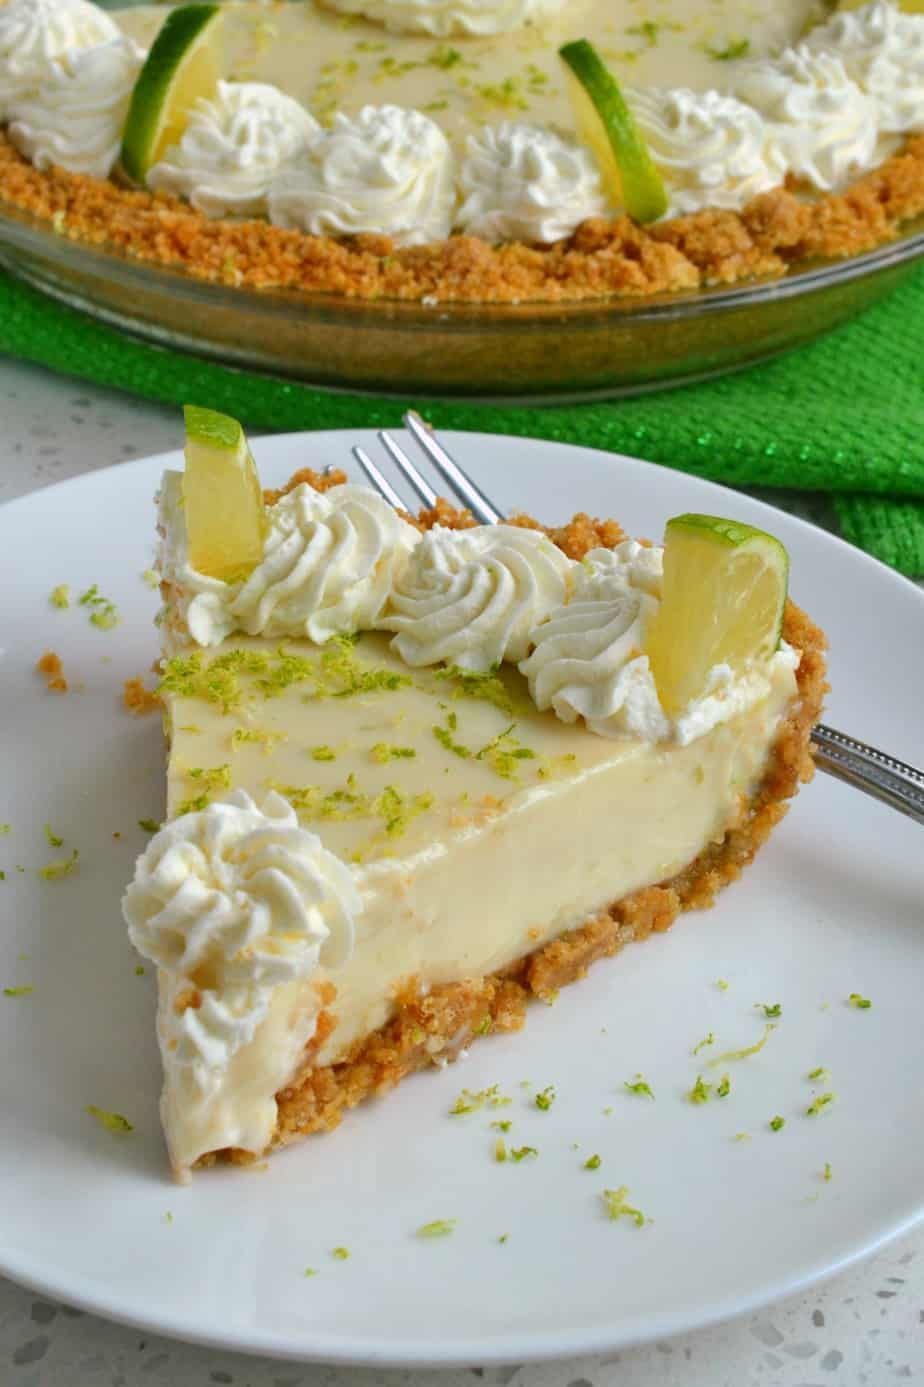 This homemade key lime pie is the perfect combination of tart and sweet from key limes, and creaminess from sour cream.